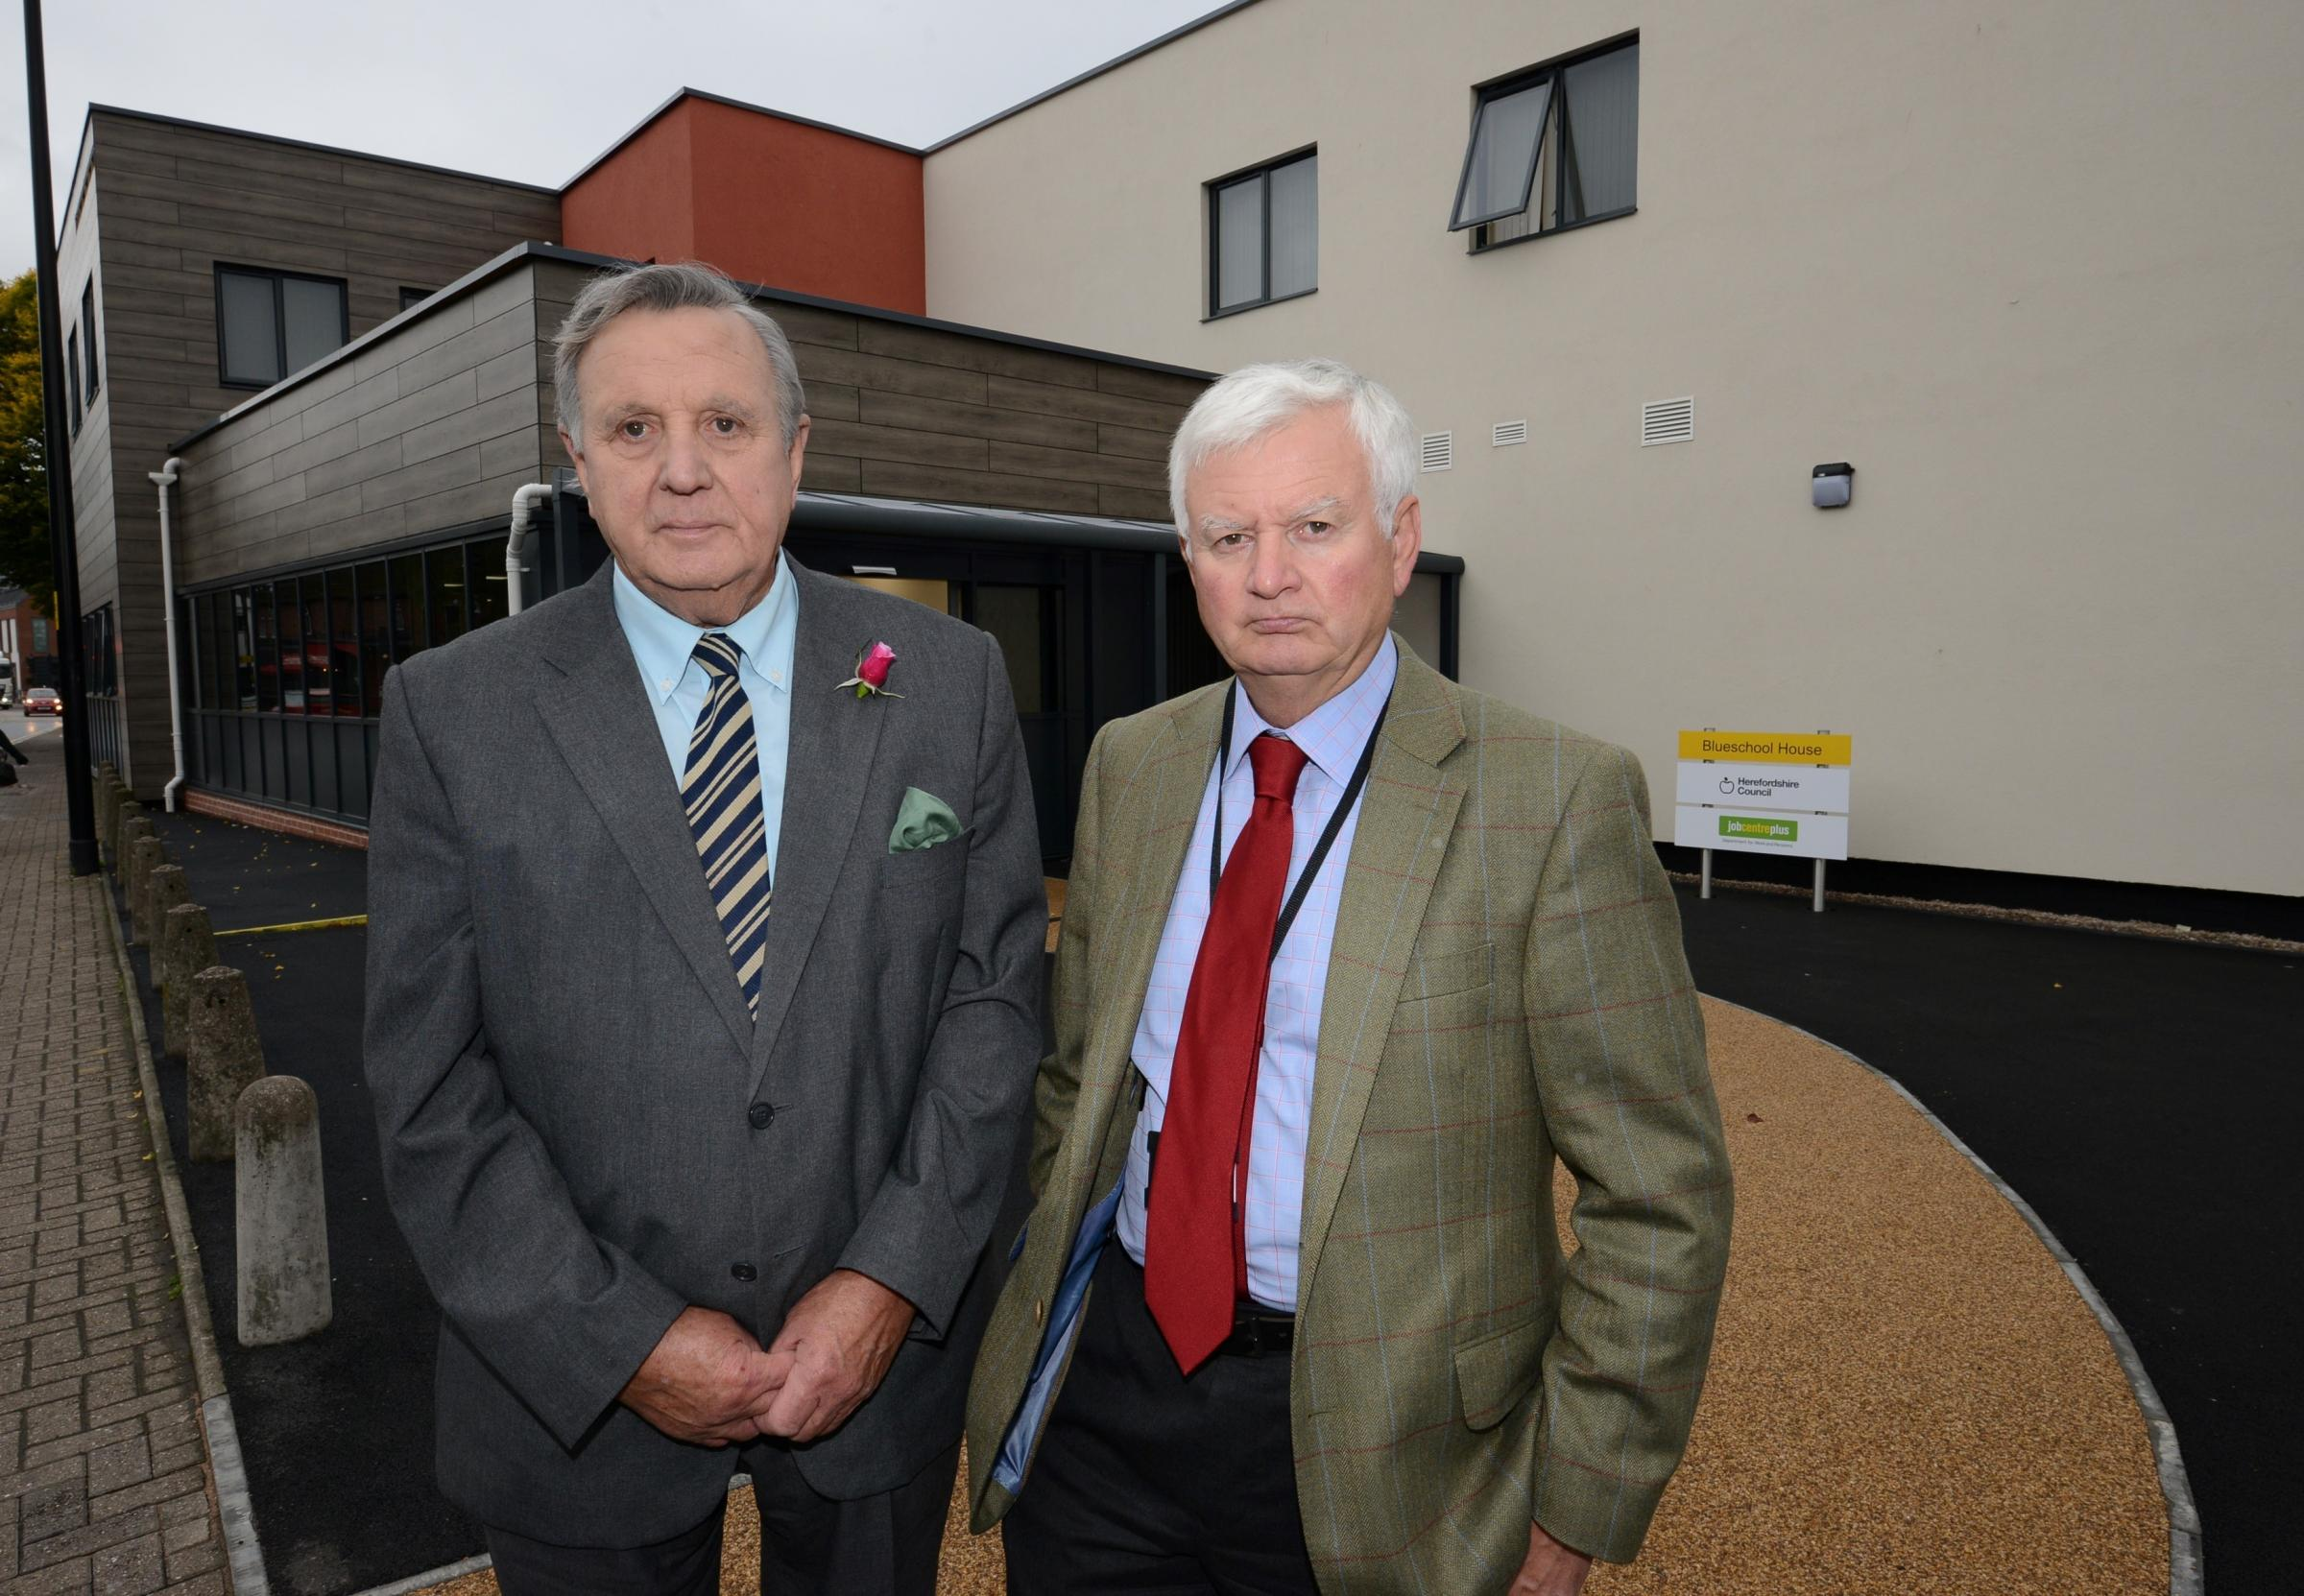 Independent Councillors Bob Matthews and John Hardwick were some of the councillors who criticised the overspend at Blueschool House, Hereford